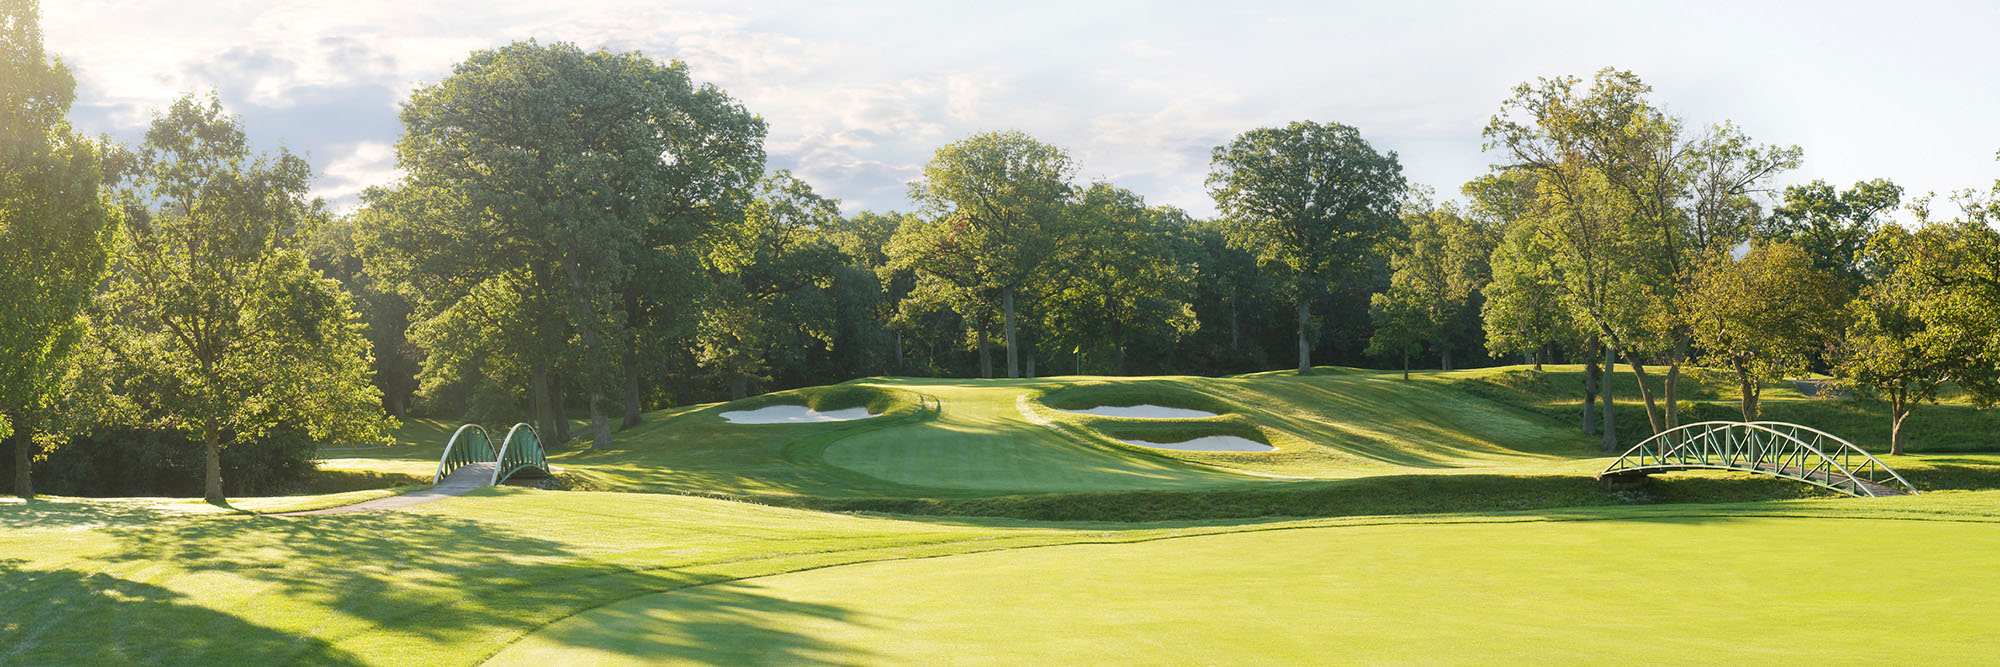 Golf Course Image - Olympia Fields North No. 3